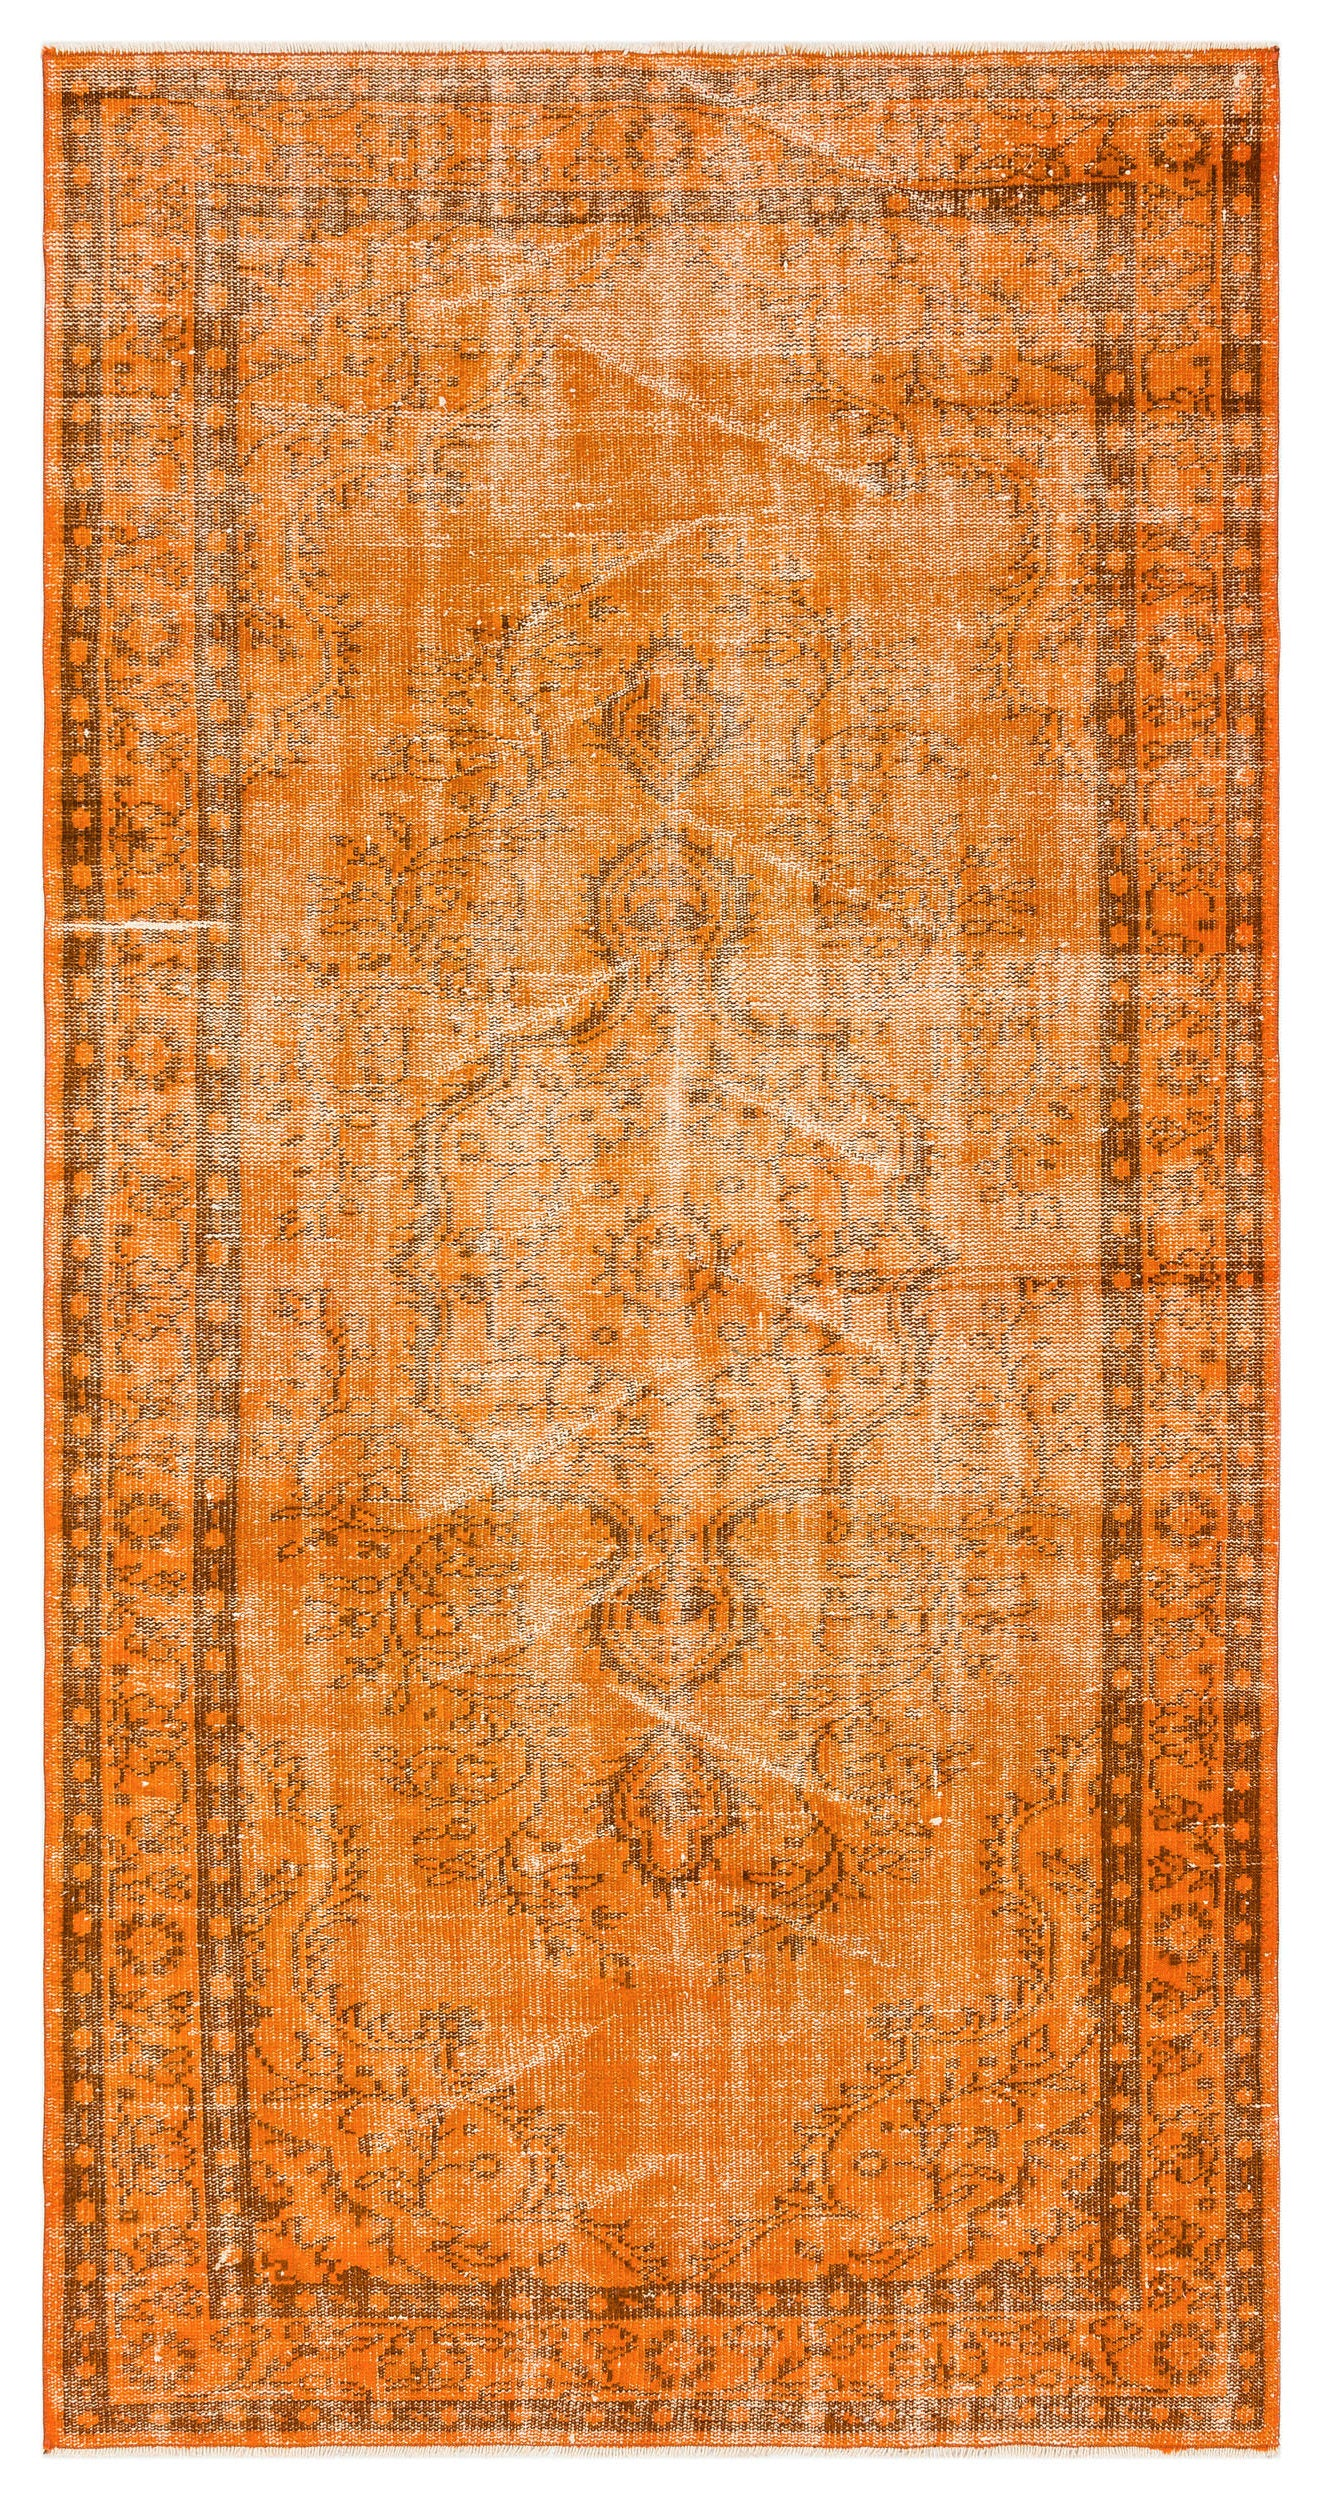 Orange Over Dyed Vintage Rug 4'6'' x 8'7'' ft 138 x 261 cm